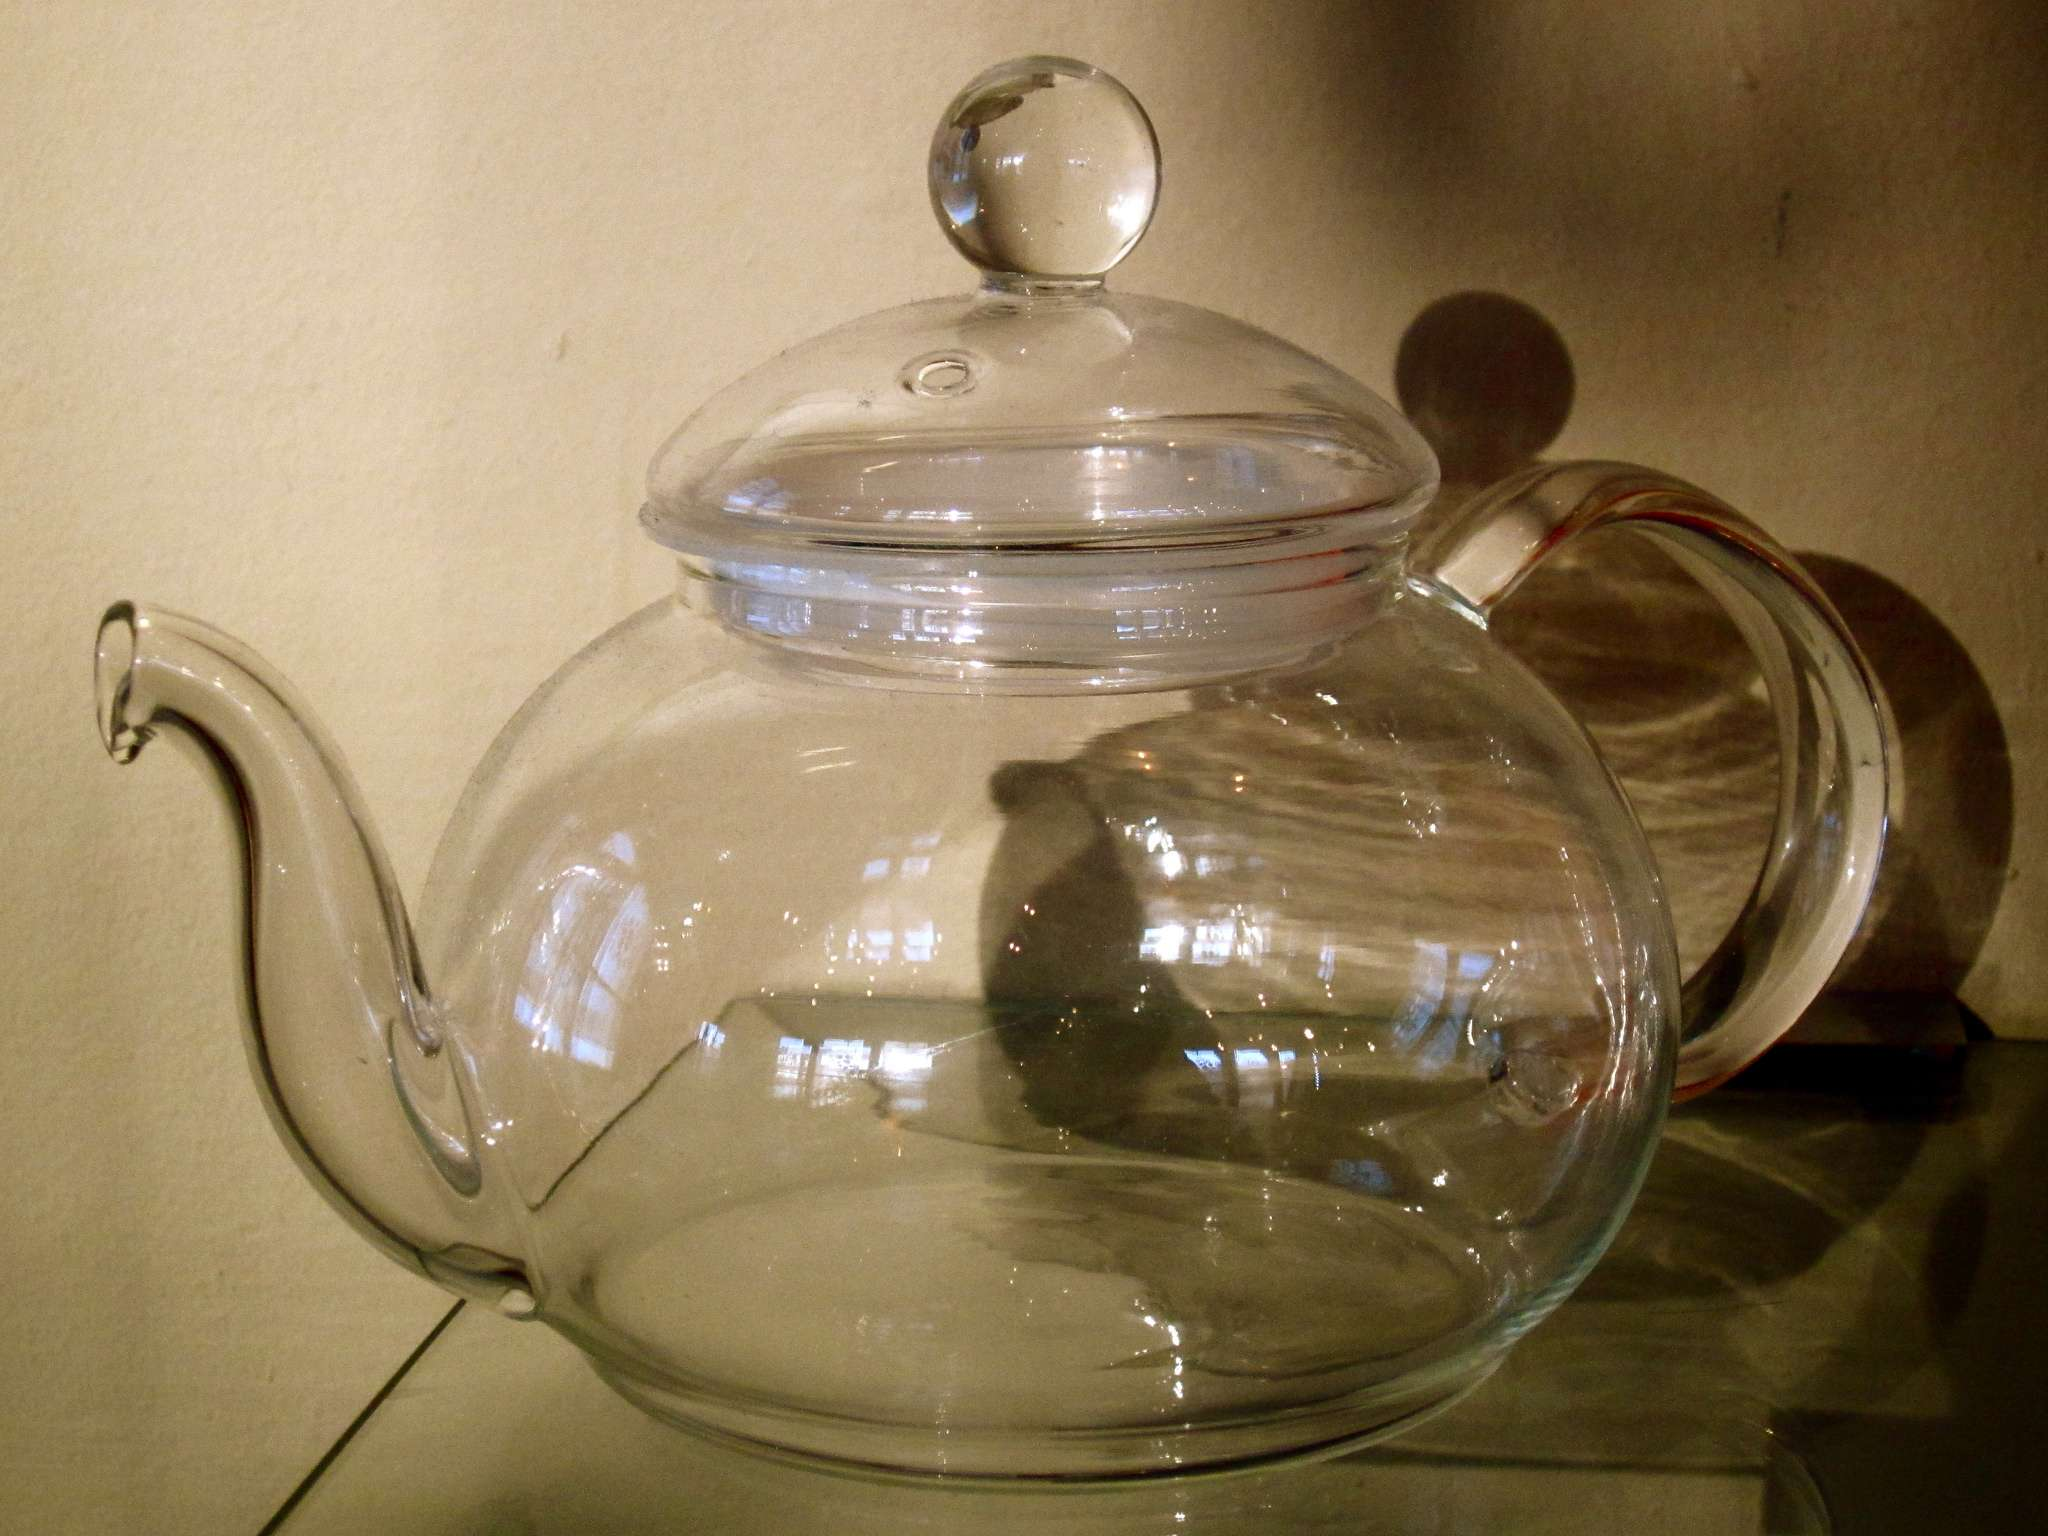 What do Teapots Have in Common with McDonald's?